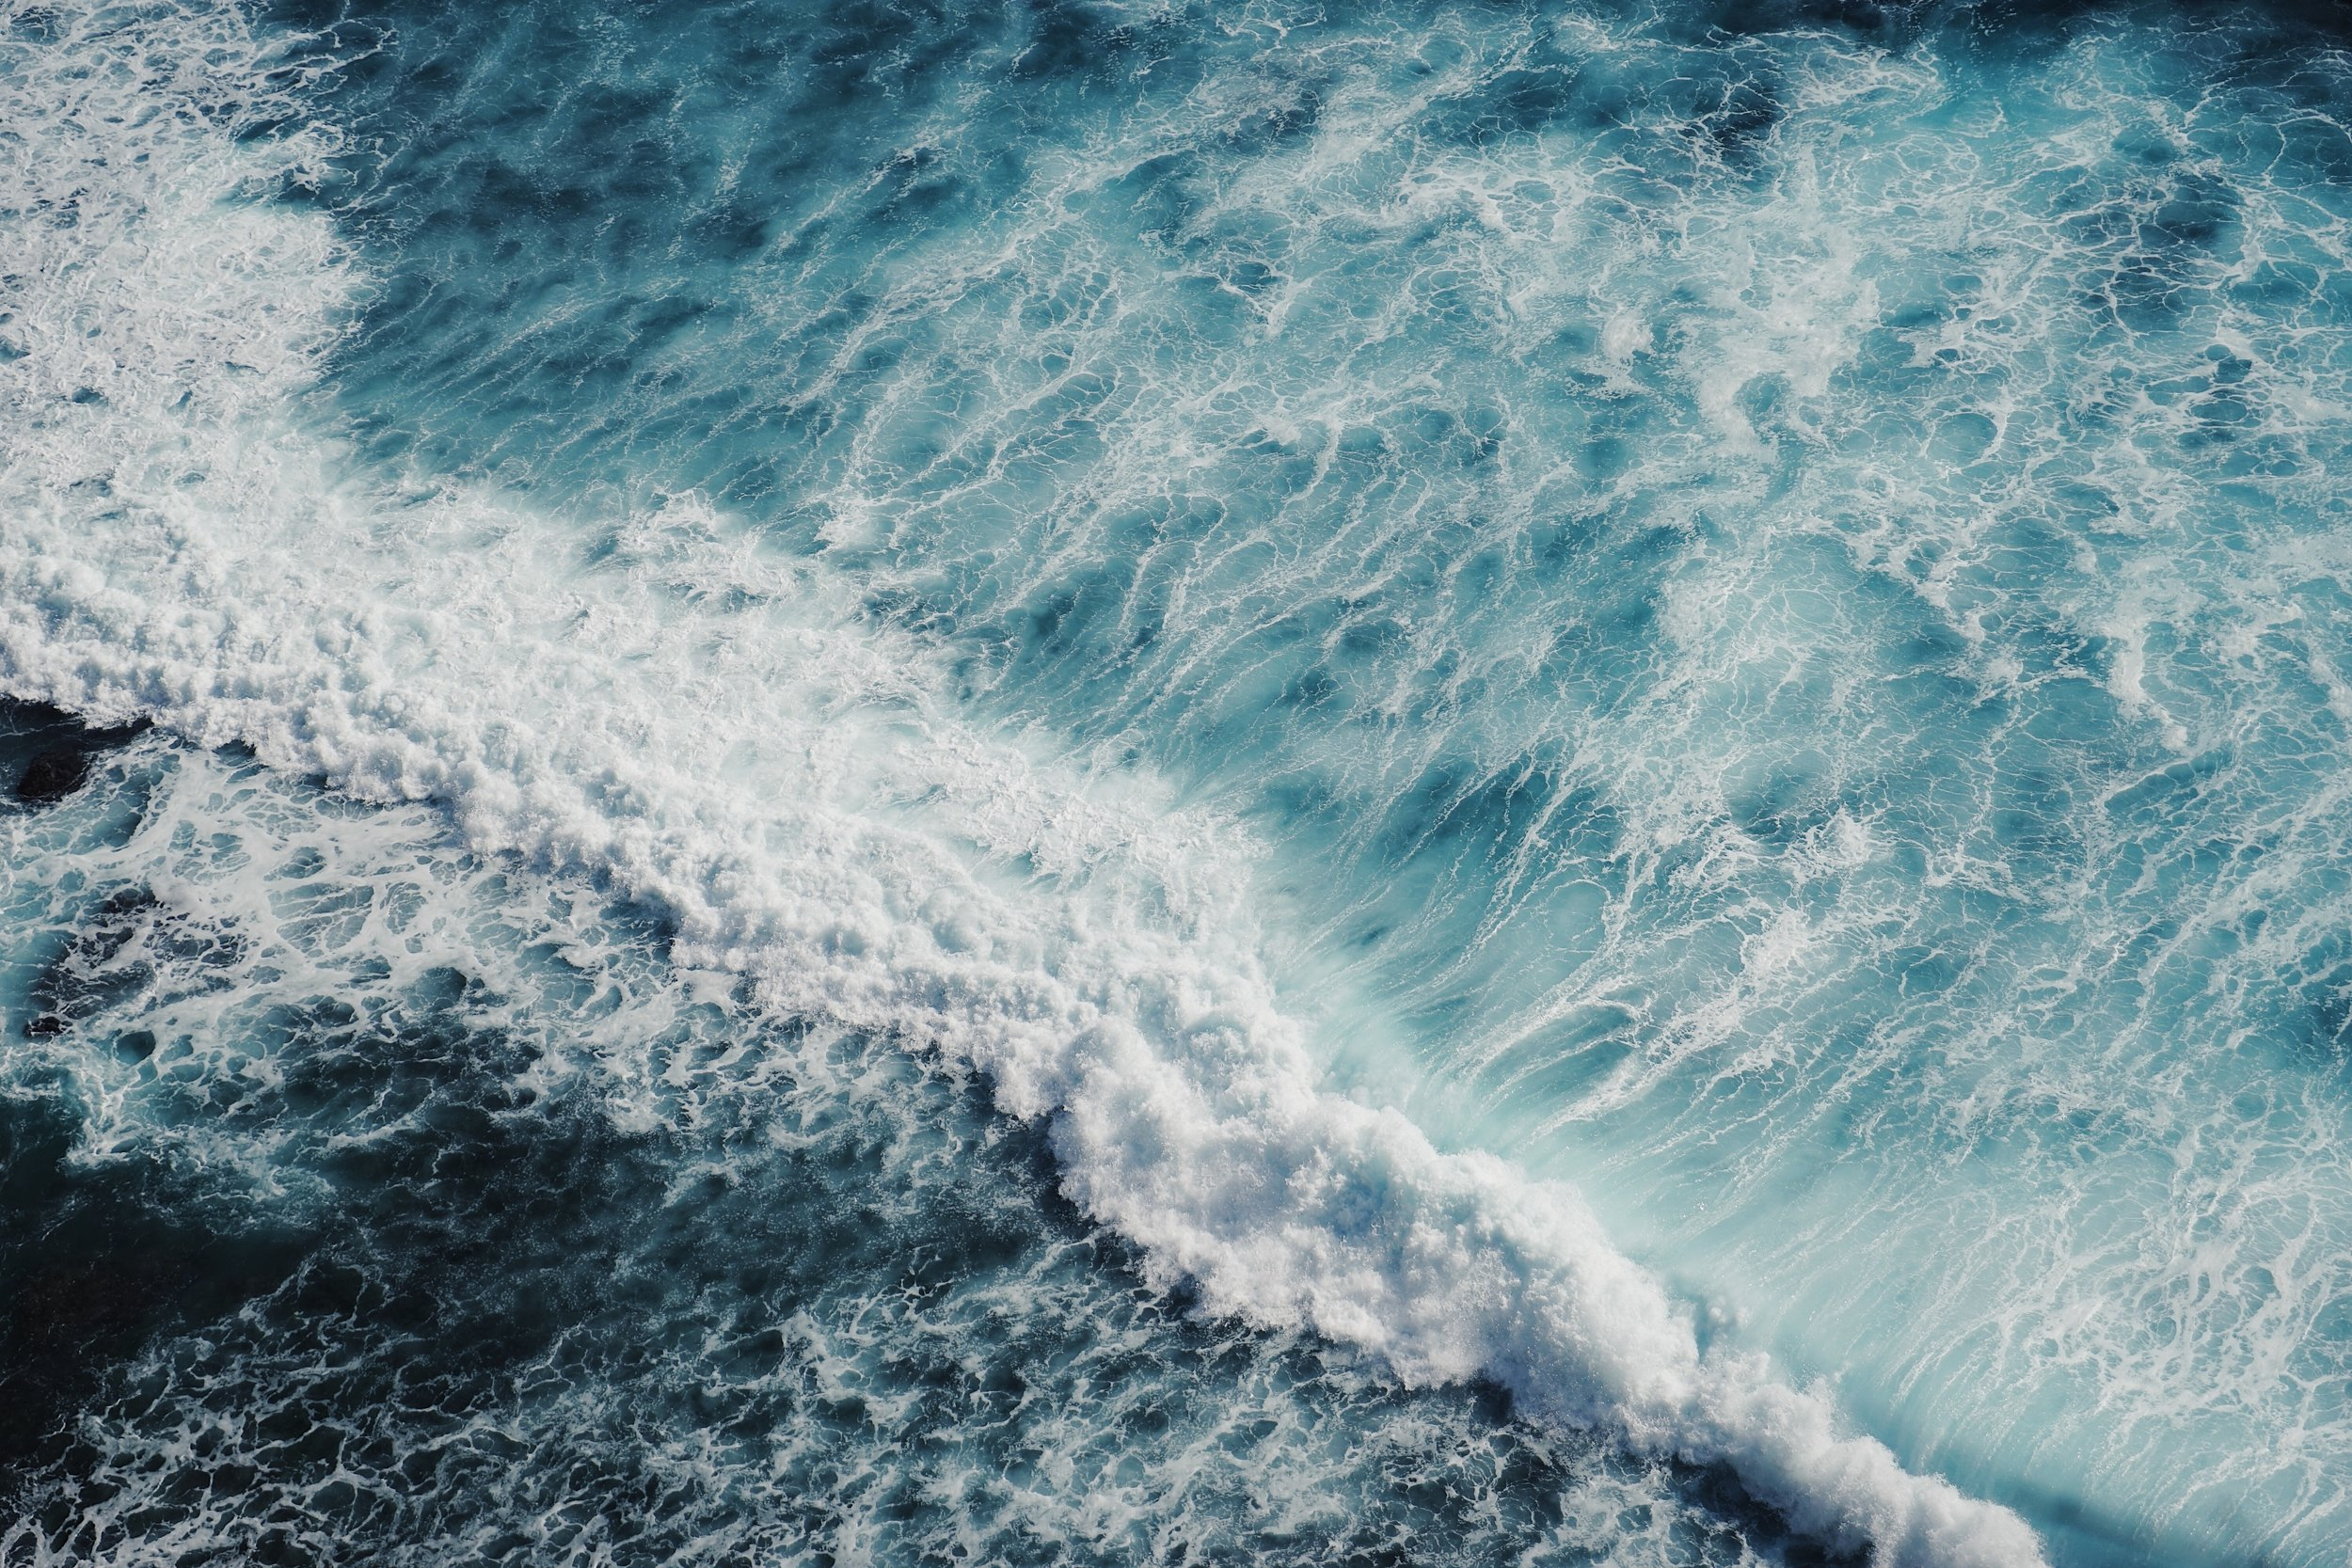 Caring: 5 Things You Can Do To Save The Ocean Today | SaltwaterVibes + Saving Blue